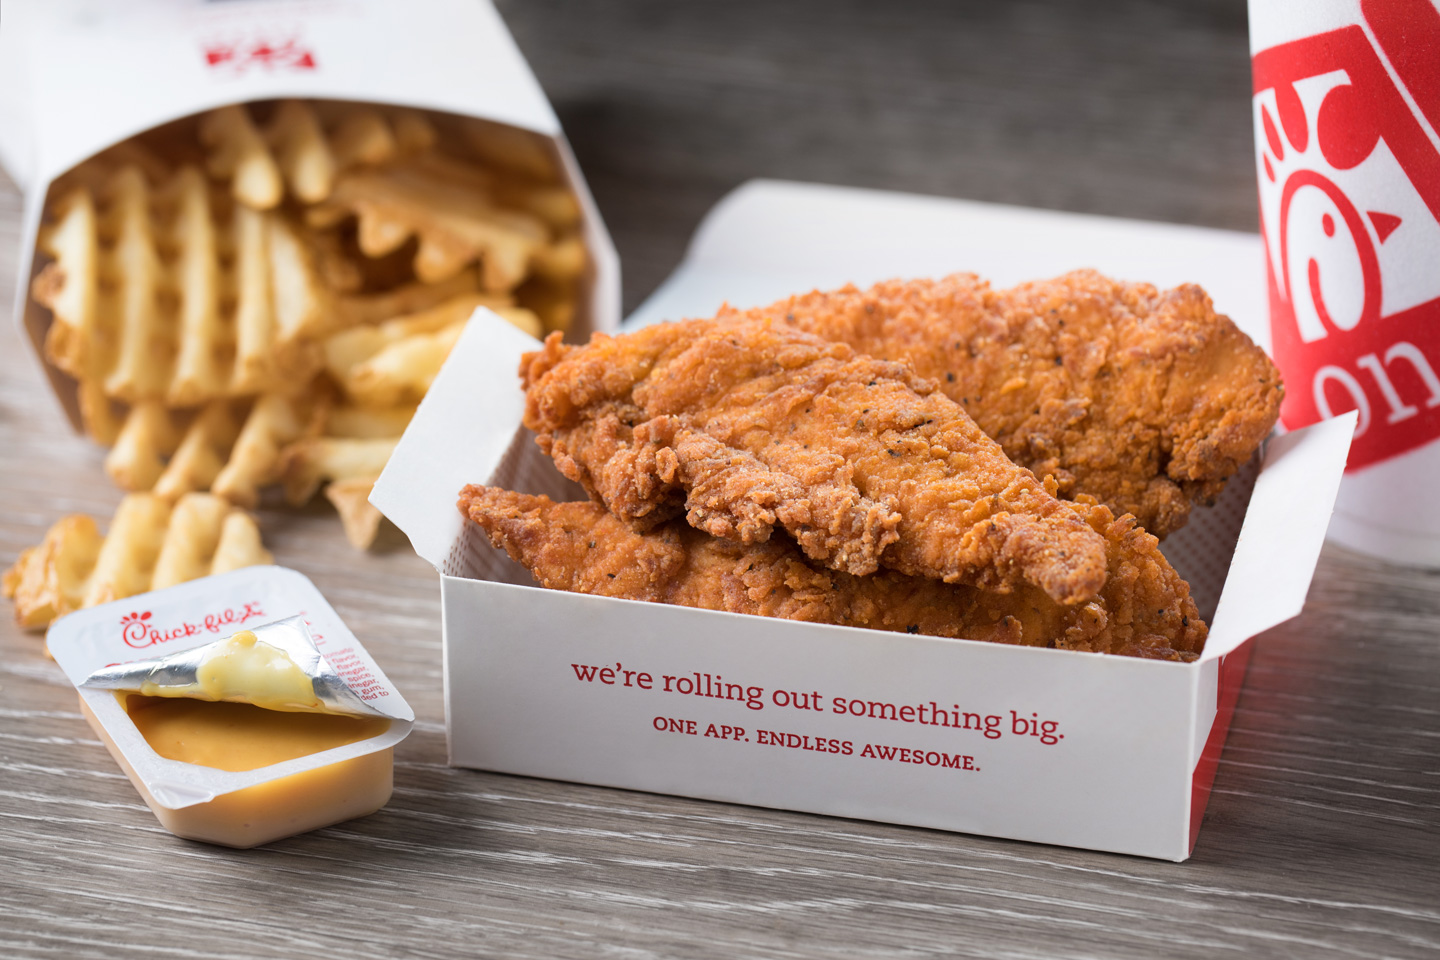 Watch Chick-fil-A takes the title. The classic McNuggets are second, followed by Burger King and Wendys. Chick-fil-As simple little nuggets provide the right texture, flavor, and crispy goodness that lead us to believe it has the best chicken nuggets in the game video